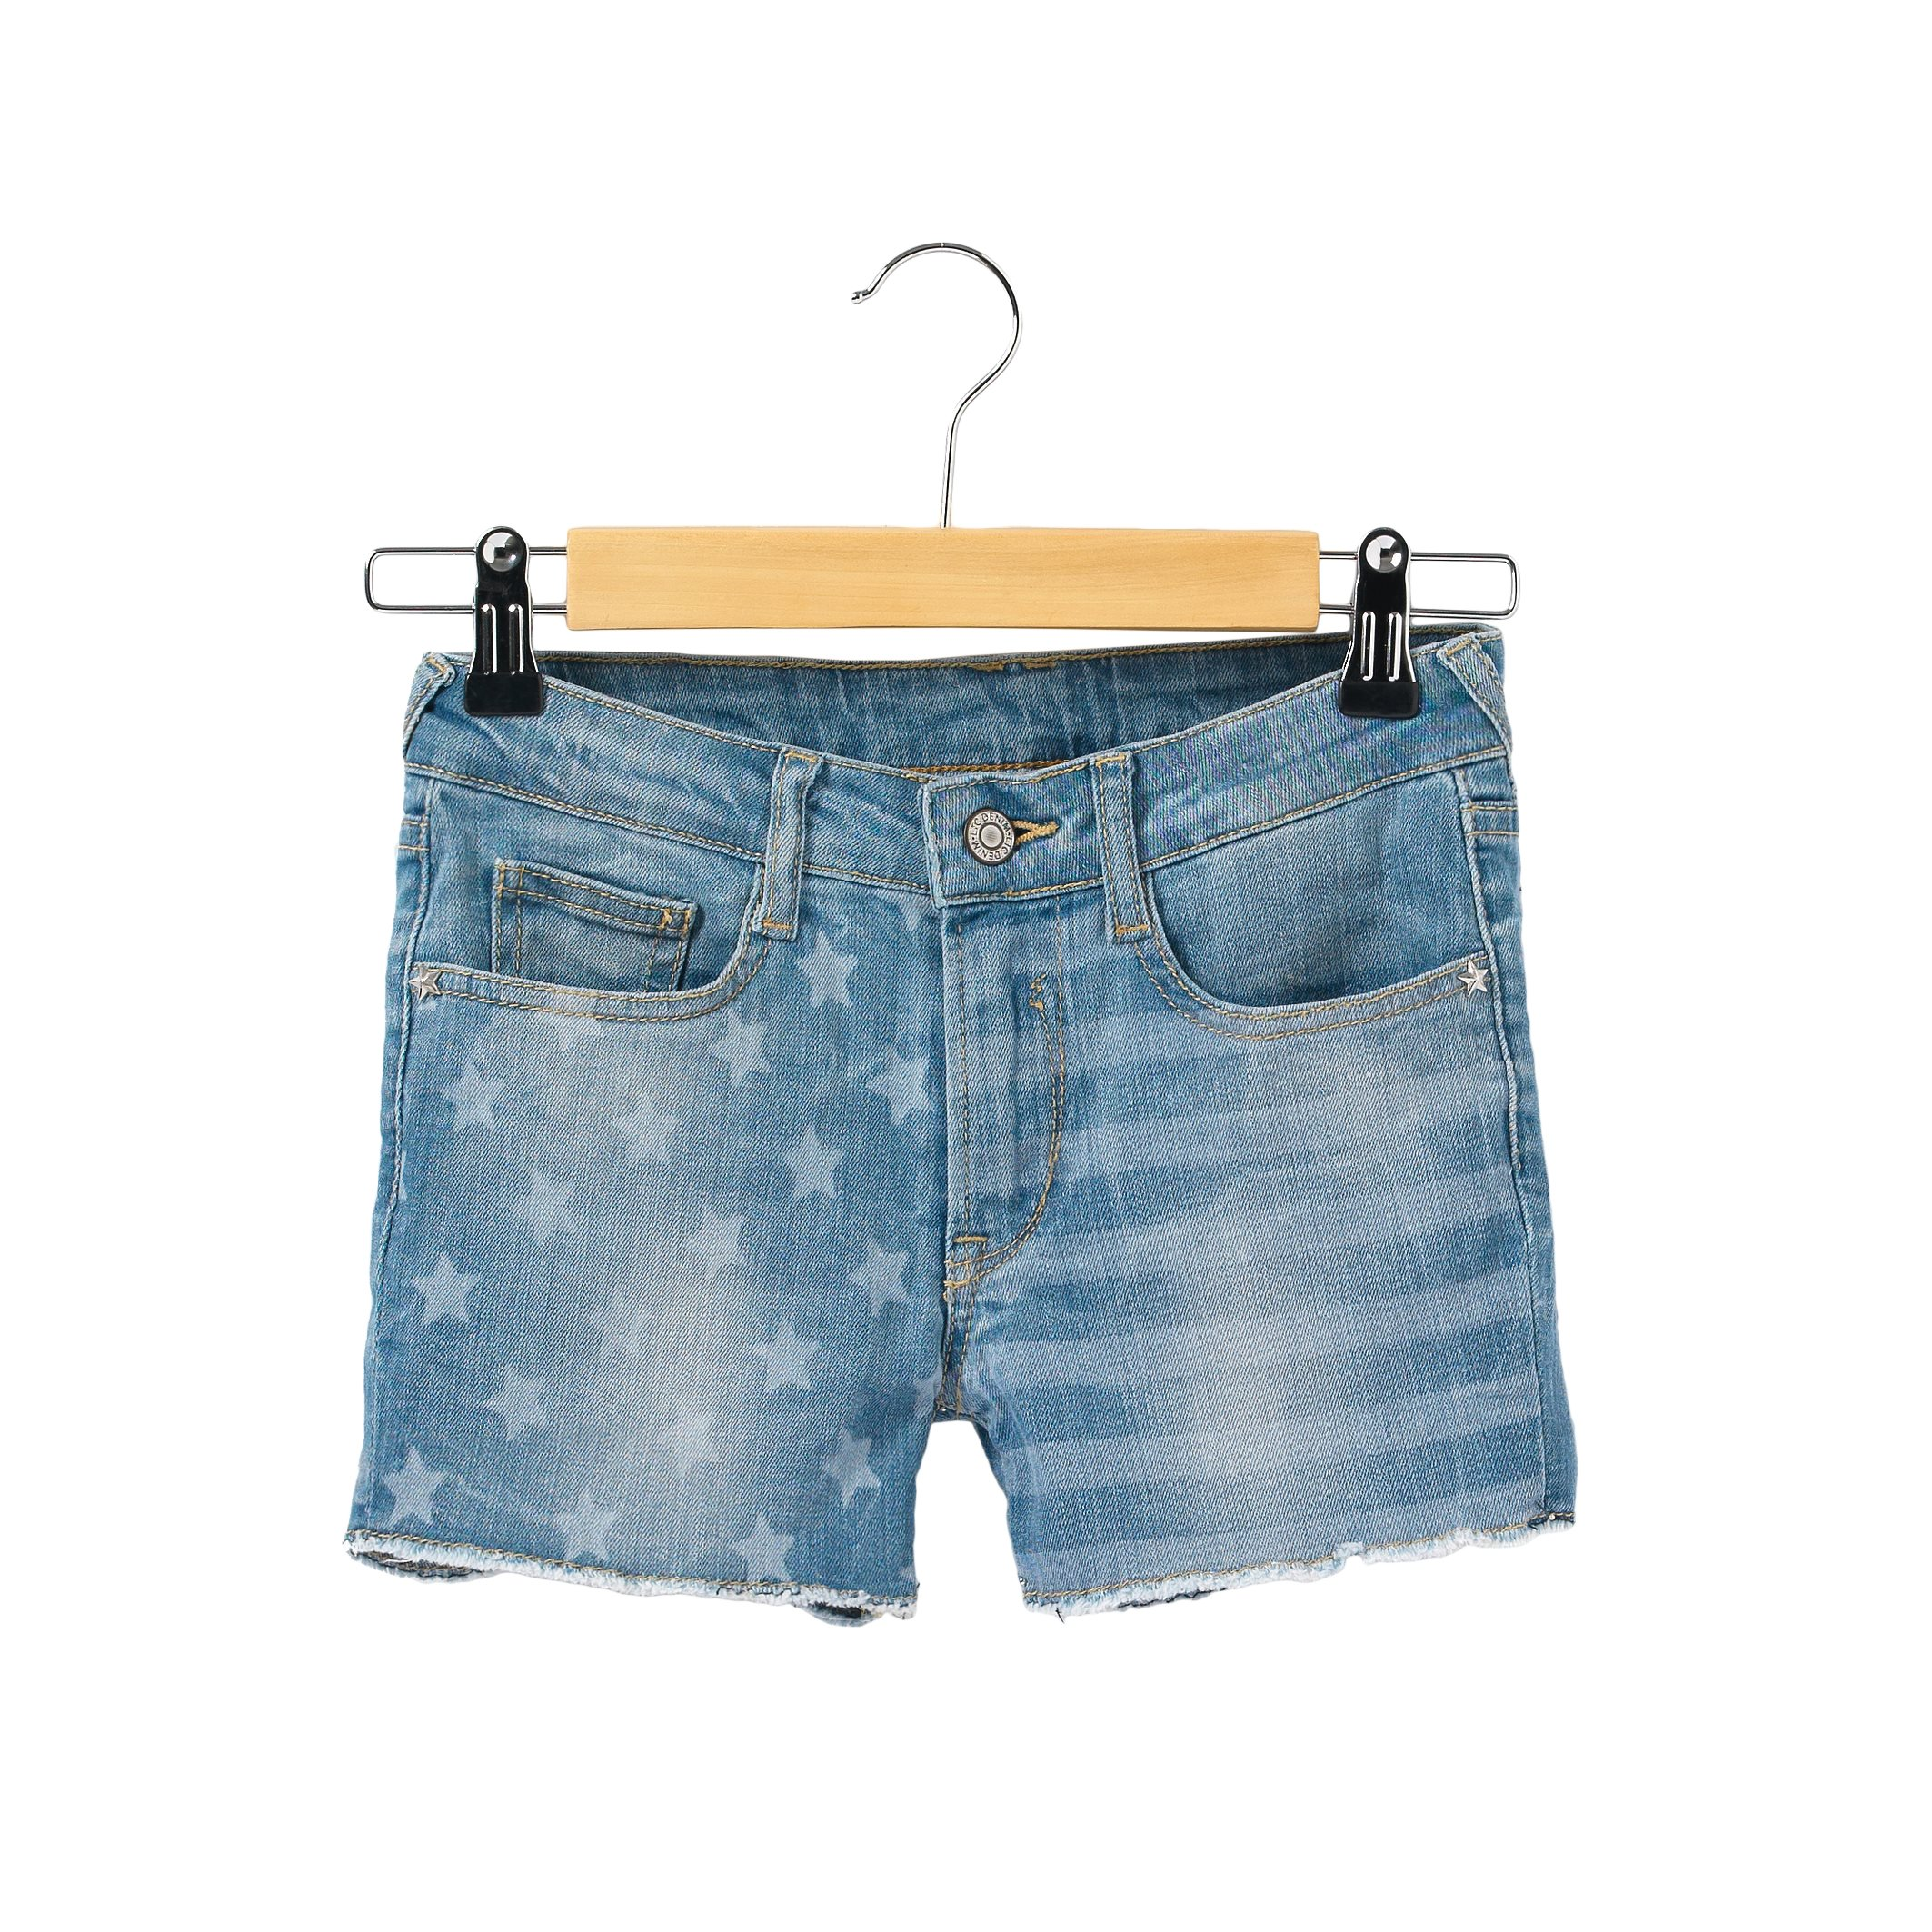 LE TEMPS DES CERISES Big Girls Cotton Denim Shorts, 8-16 Years Blue Size 12 Years - 59 In.